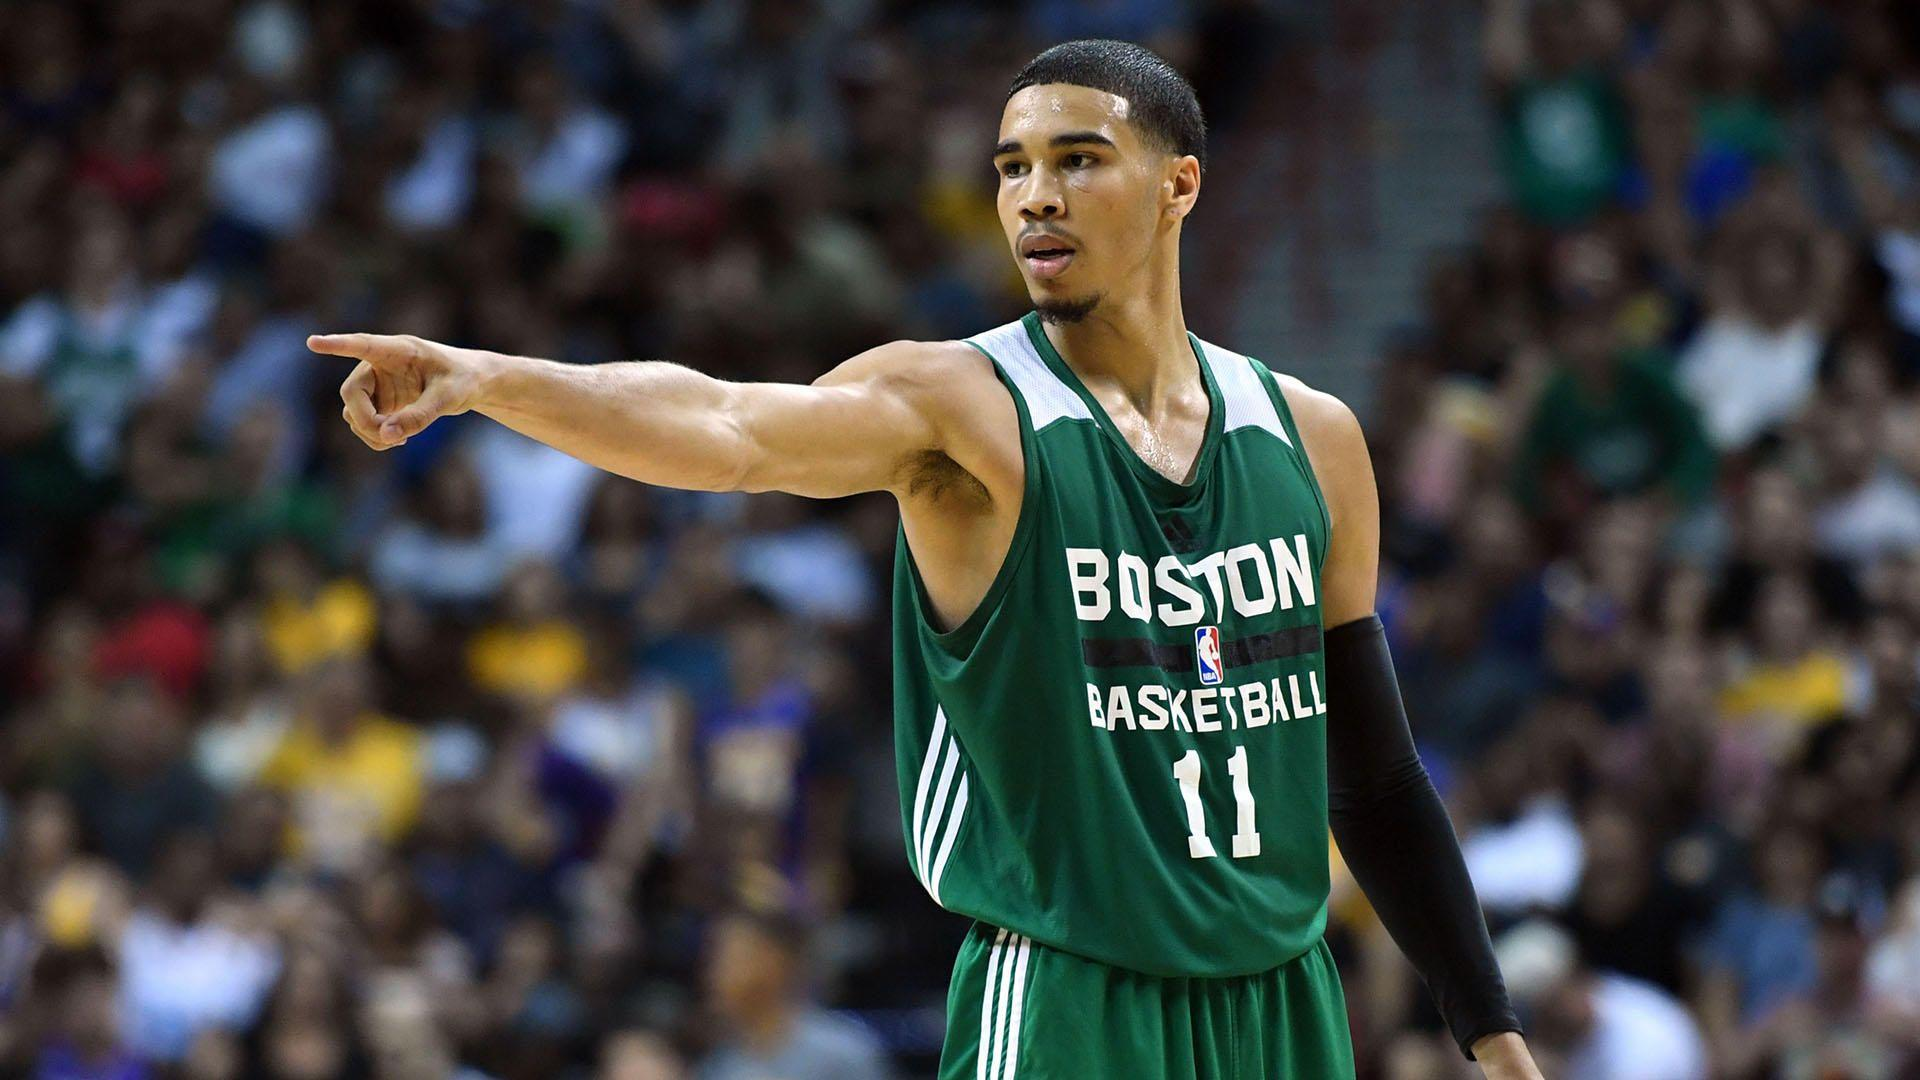 Time to Schein: Jayson Tatum is excited to play with Kyrie Irving